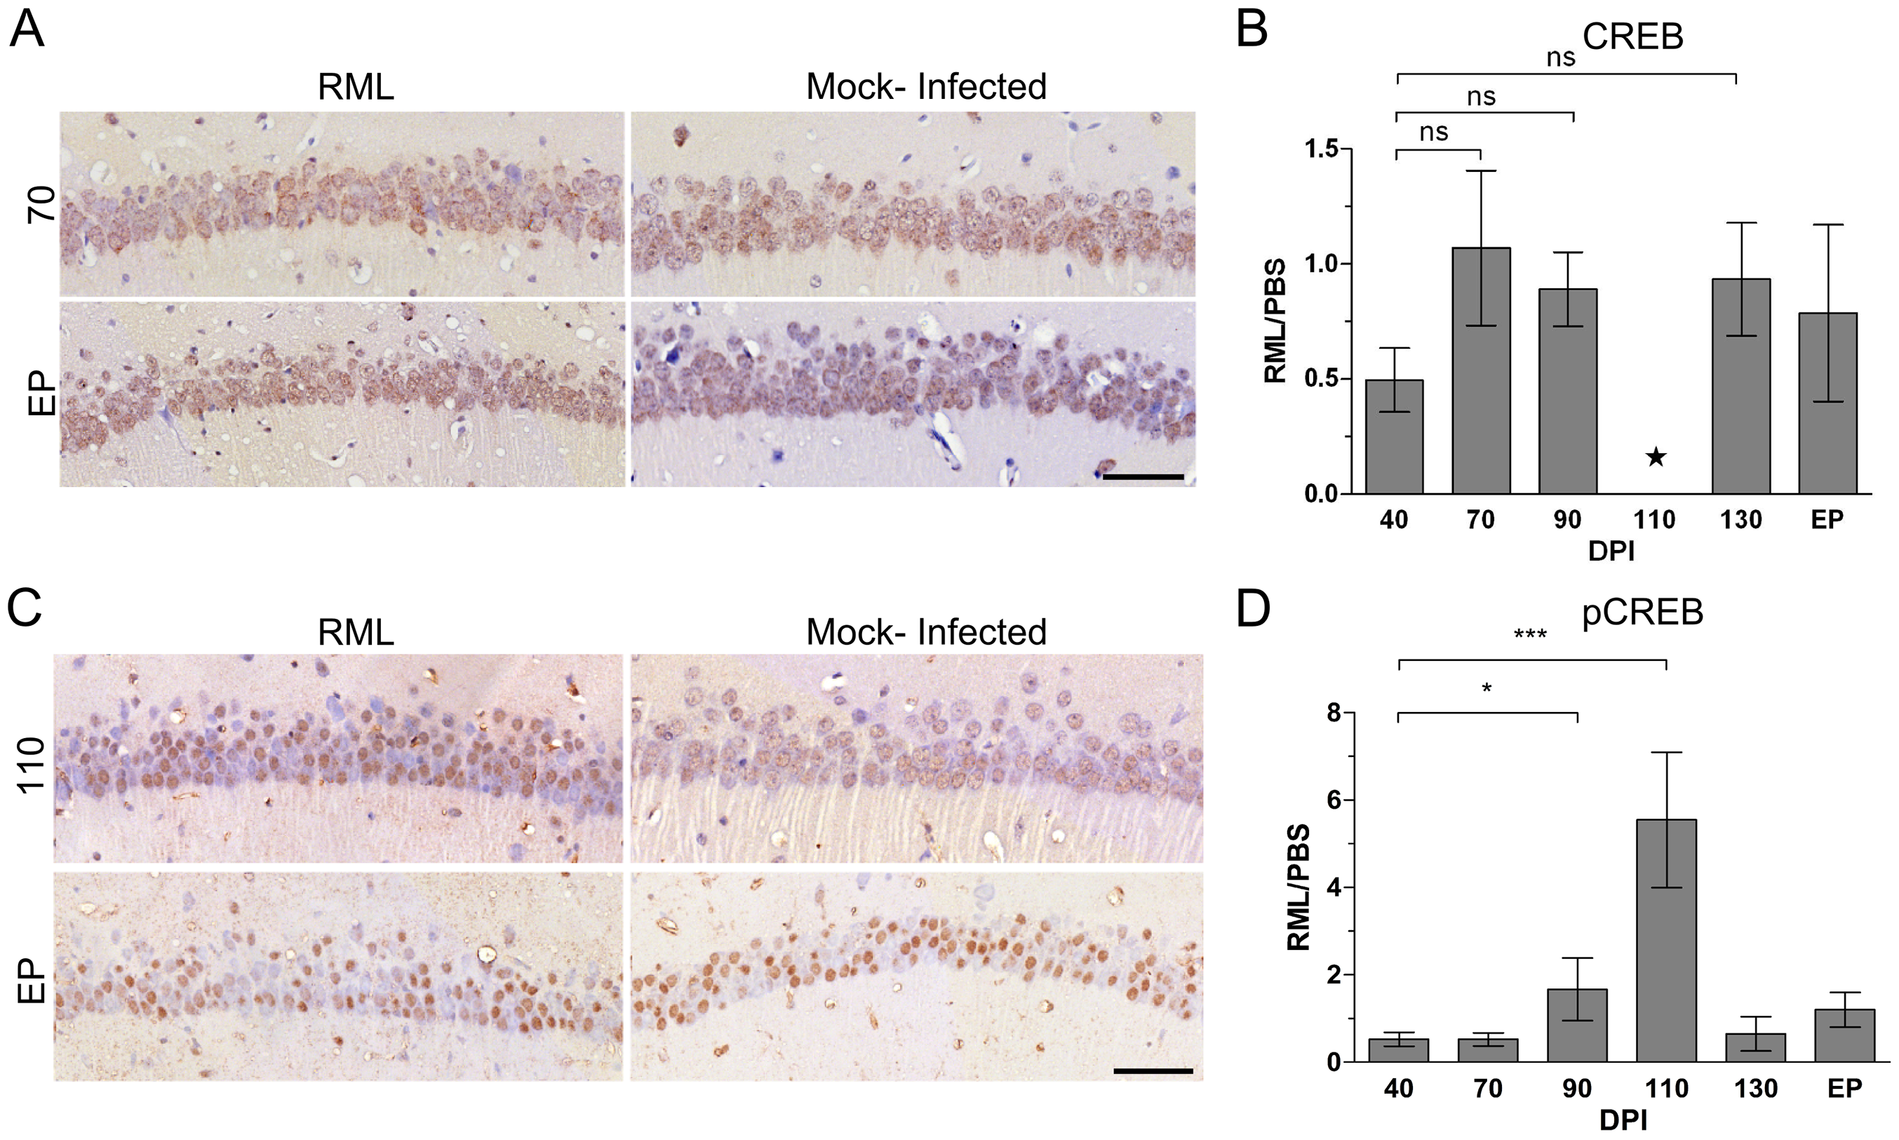 Immunohistochemical detection of CREB in CA1 hippocampal neurons reveals an up-regulation of the phosphorylated form of the protein during early prion disease.